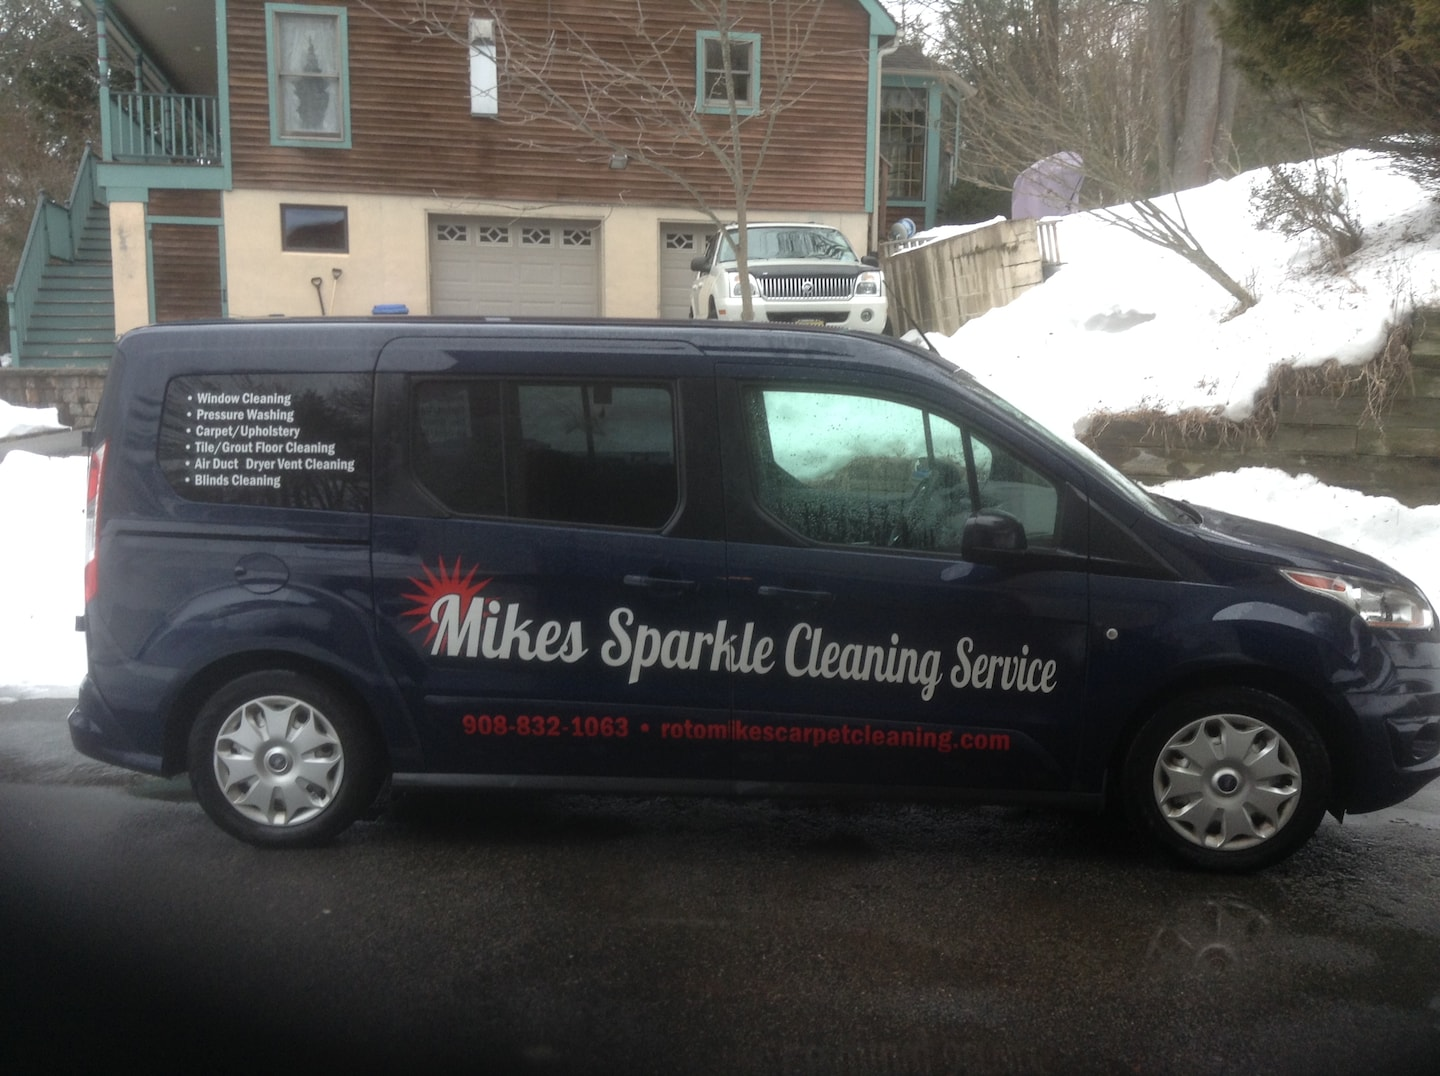 MIKE'S SPARKLE CLEANING SERVICE